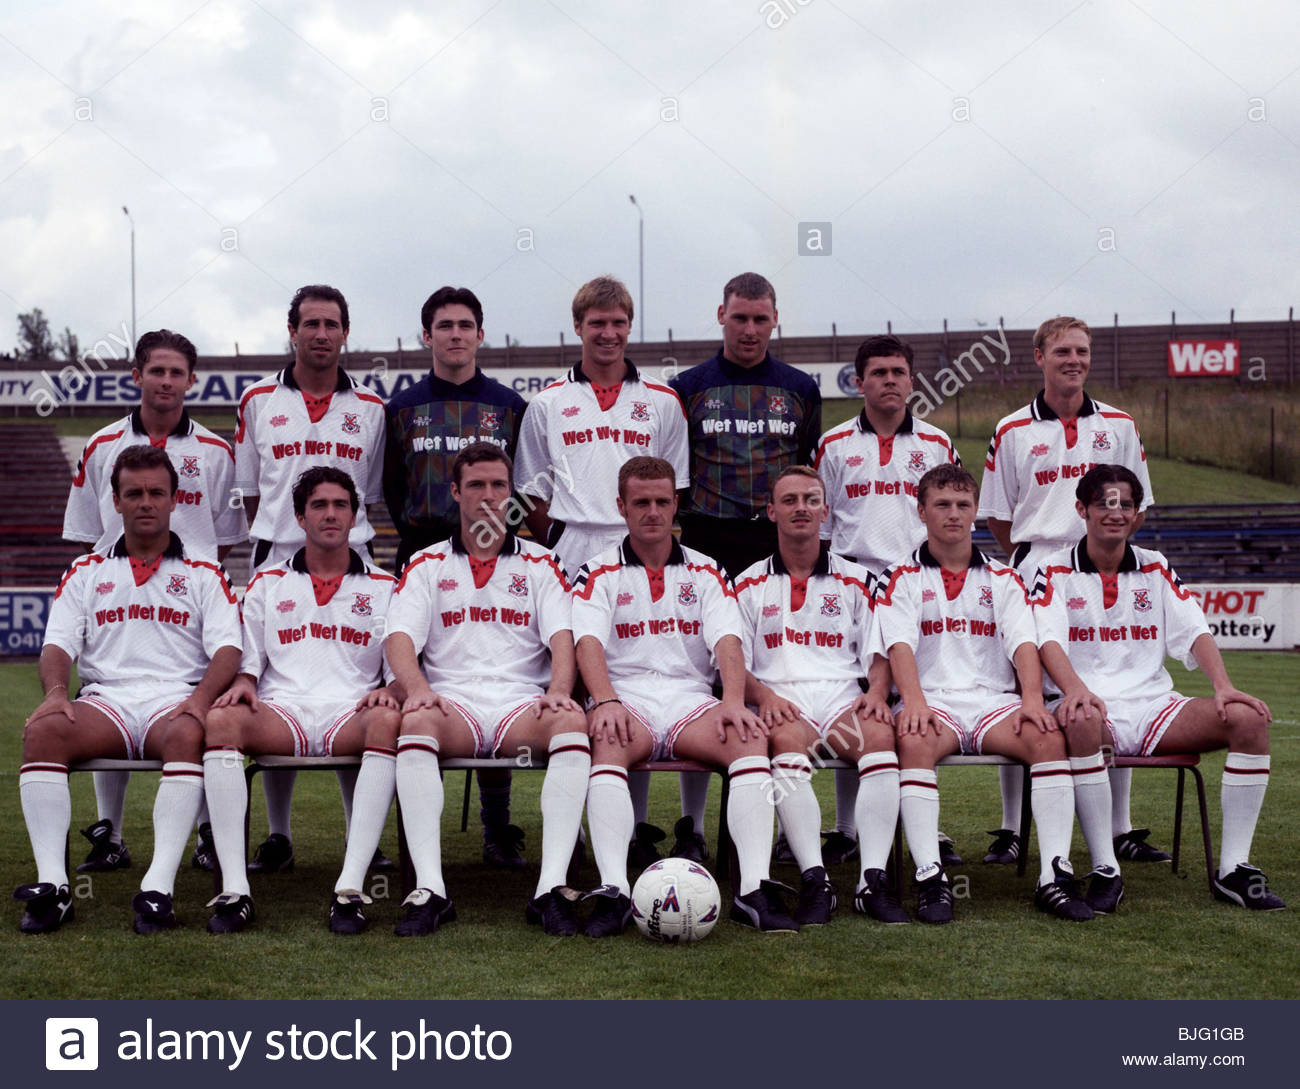 SEASON 1994/1995 CLYDEBANK Back row from left: Craig Flannigan, Colin Harris, Alan Monaghan, Tom Currie, Gary Mathews, - Stock Image